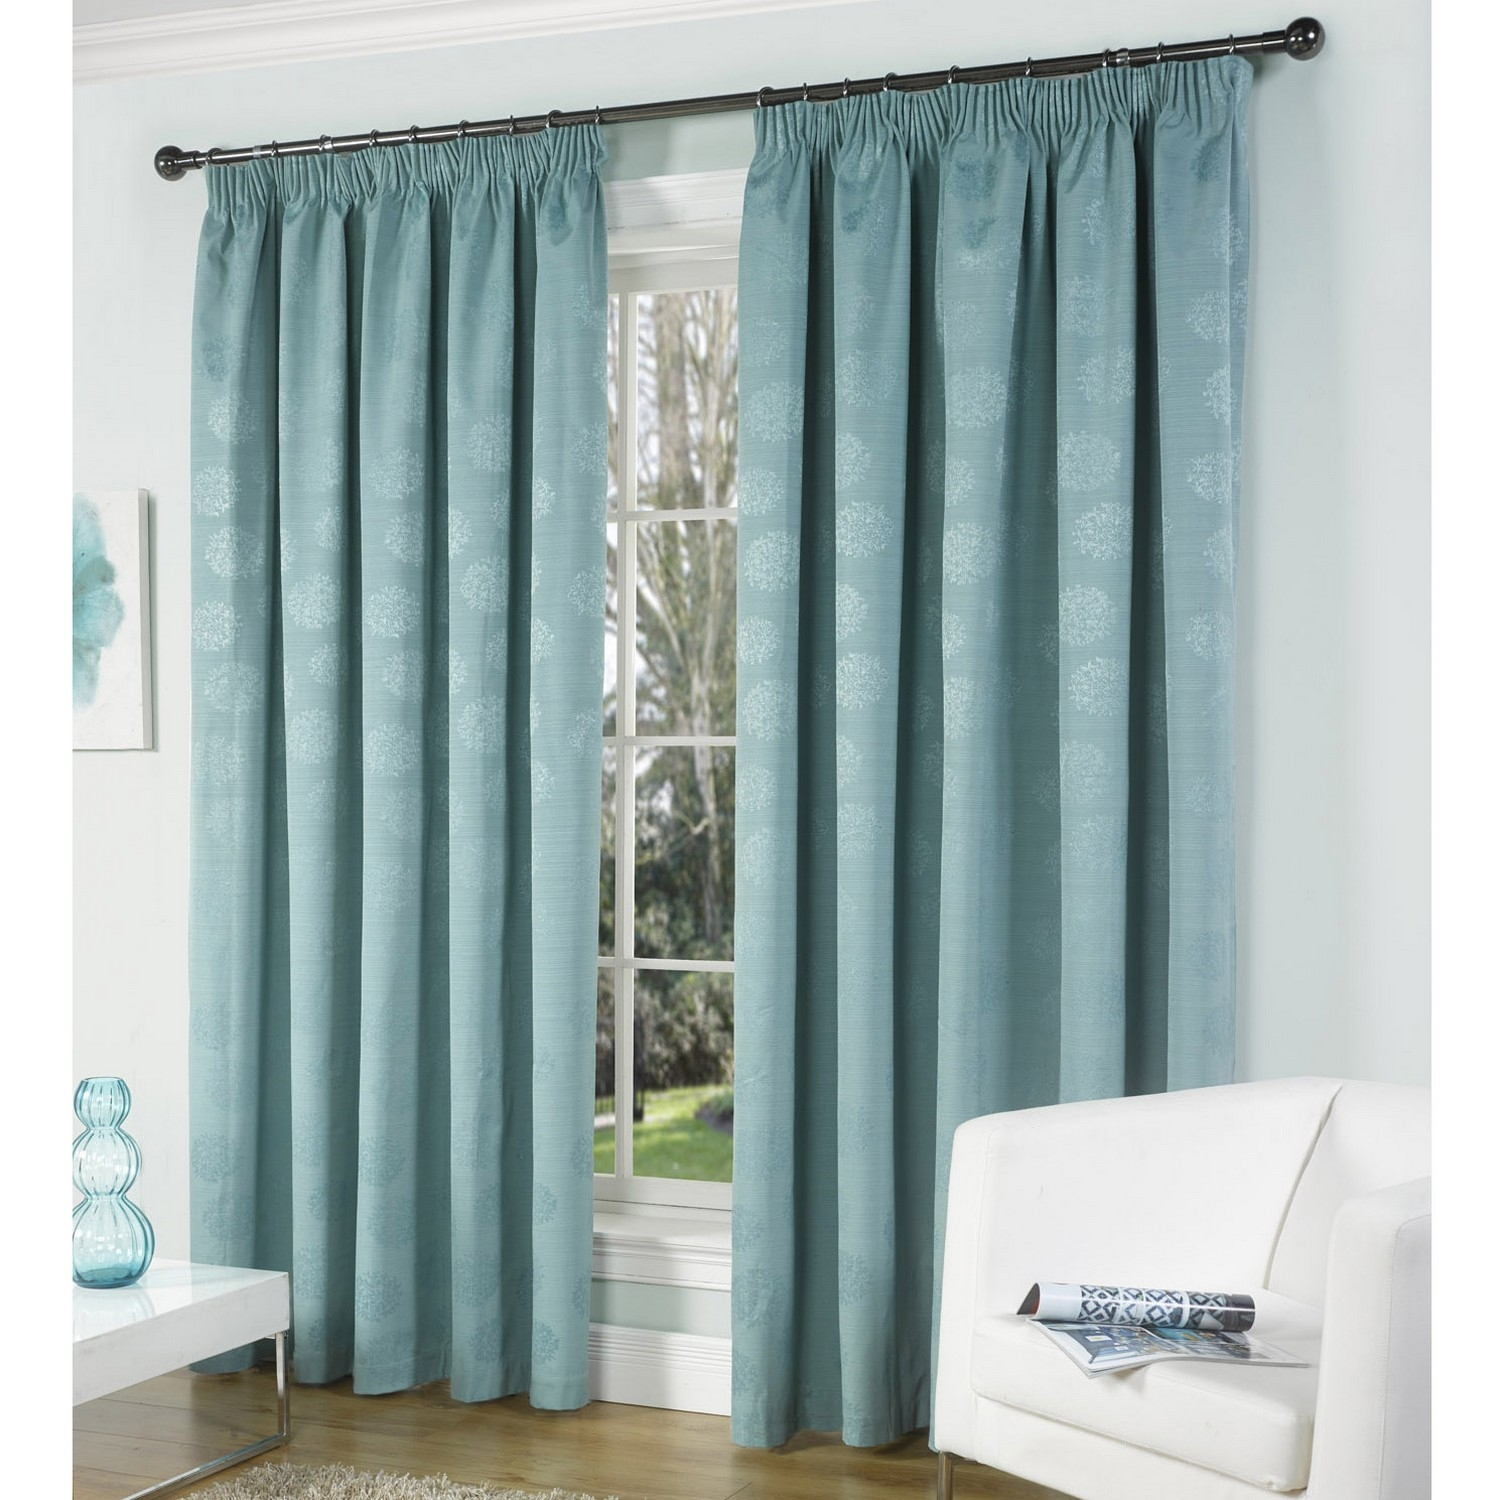 Curtain Stunning Patterned Blackout Curtains Curtain Panels In Duck Egg Blue Blackout Curtains (Image 2 of 15)